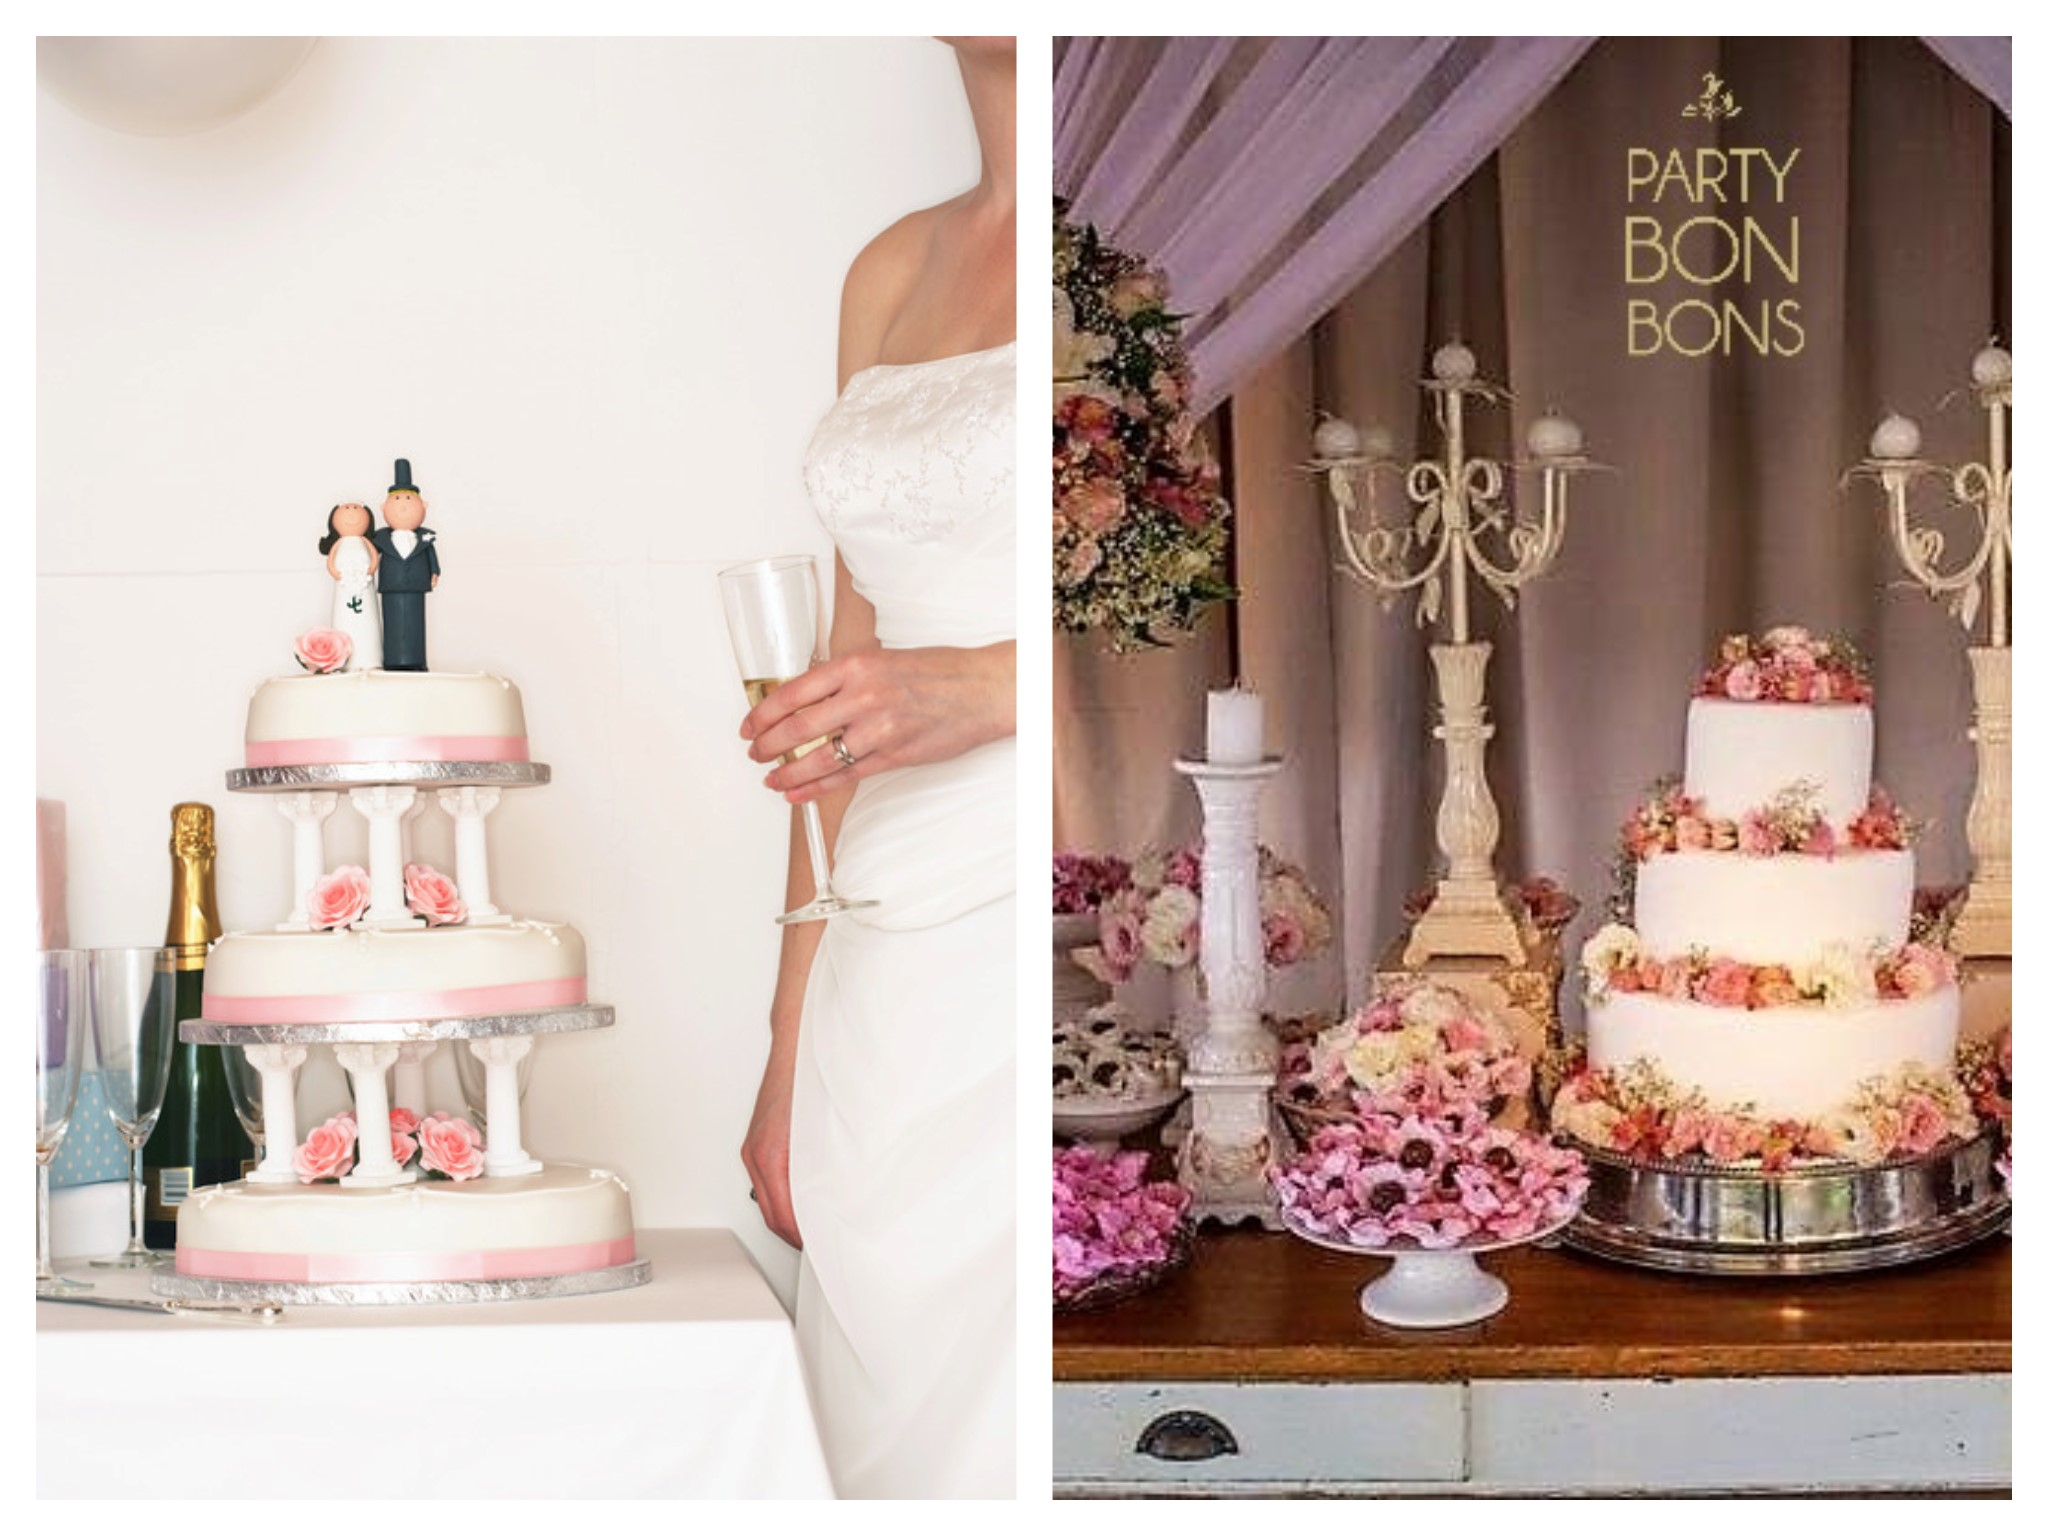 Wedding Cake Table - Prefer Simple to Elegant?